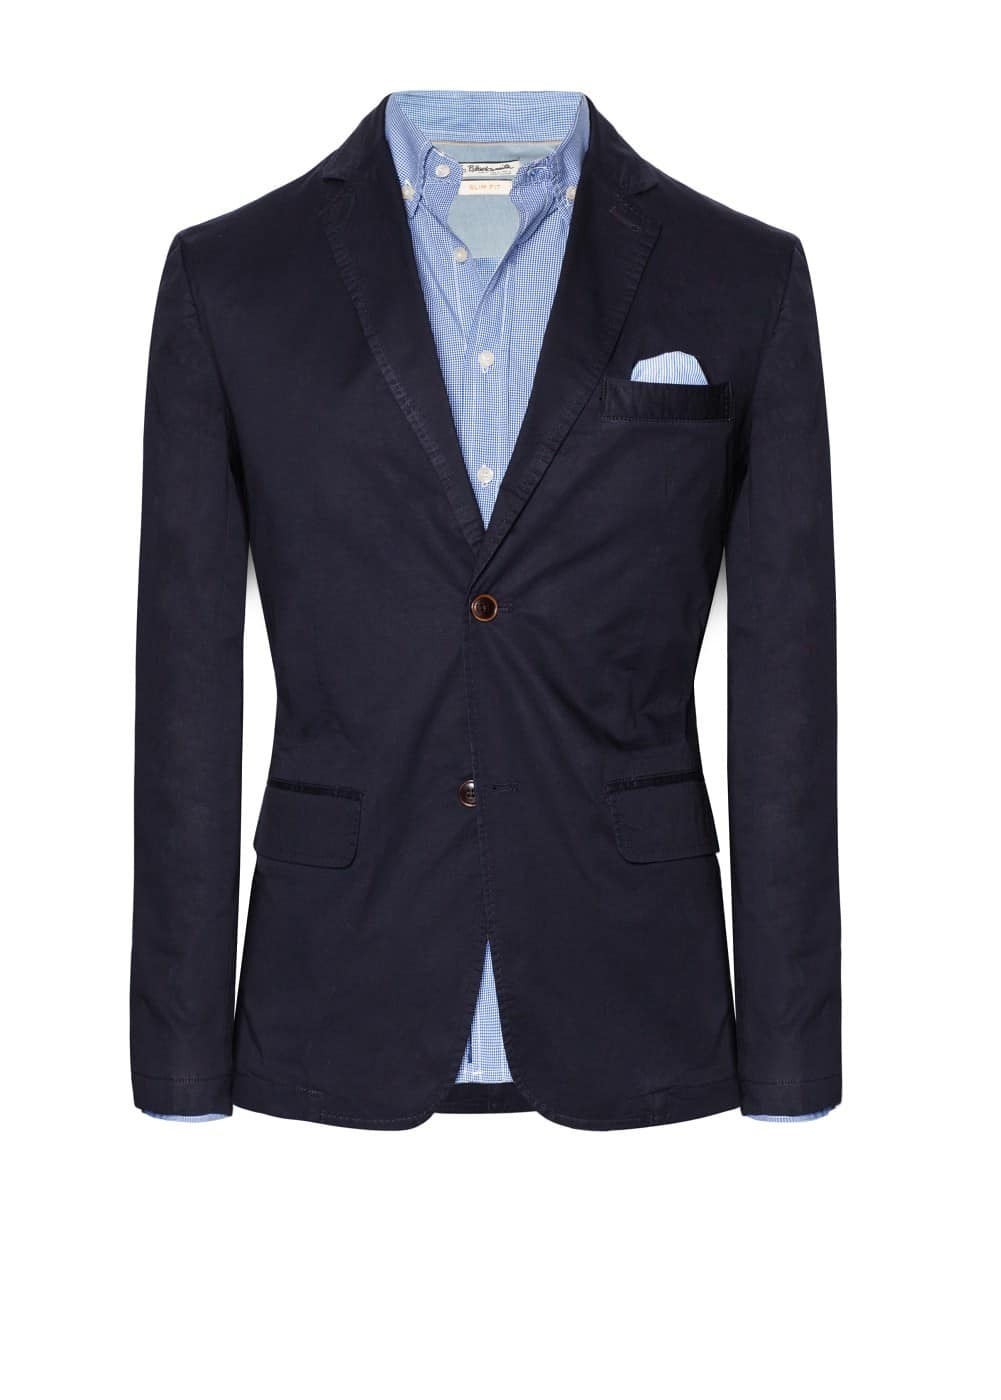 Poplin cotton blazer